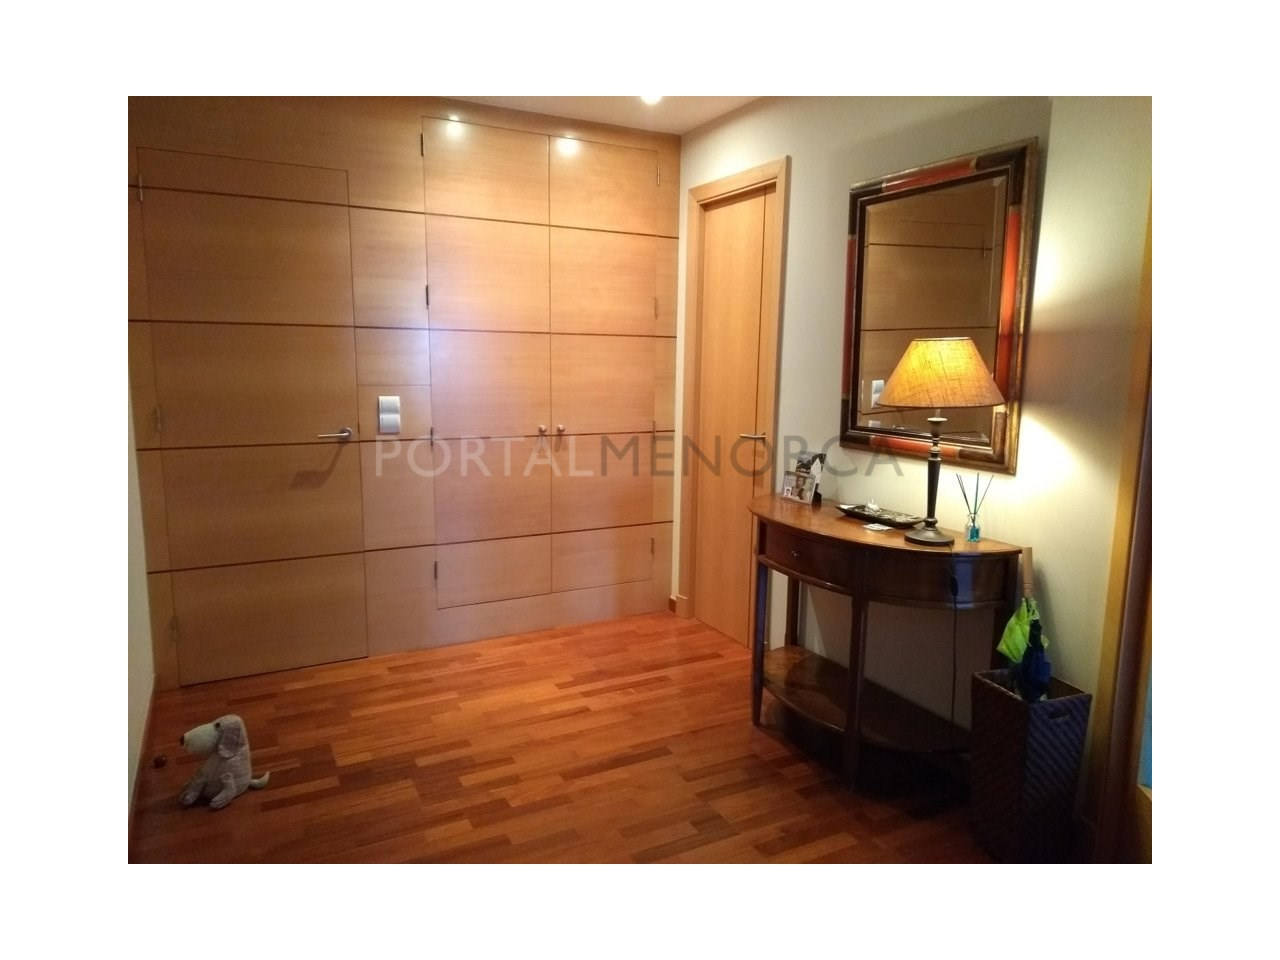 Spacious renovated apartment for sale in Ciutadella-Hall